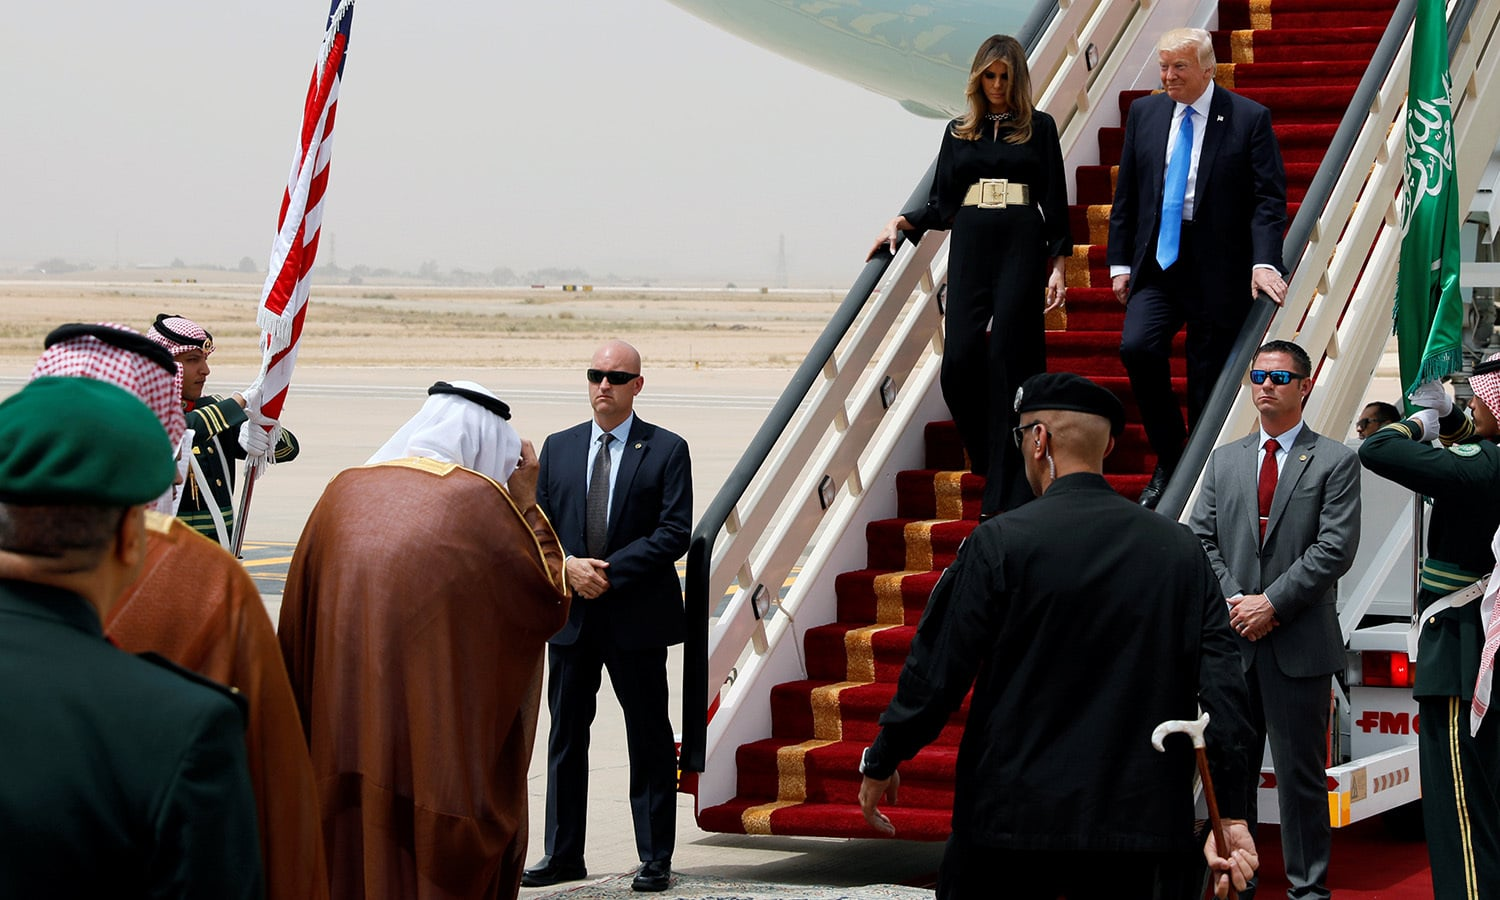 Saudi Arabia's King Salman bin Abdulaziz Al Saud (lower left, back to camera) welcomes US President Donald Trump and first lady Melania Trump as they arrive aboard Air Force One in Riyadh, May 20. ─ Reuters